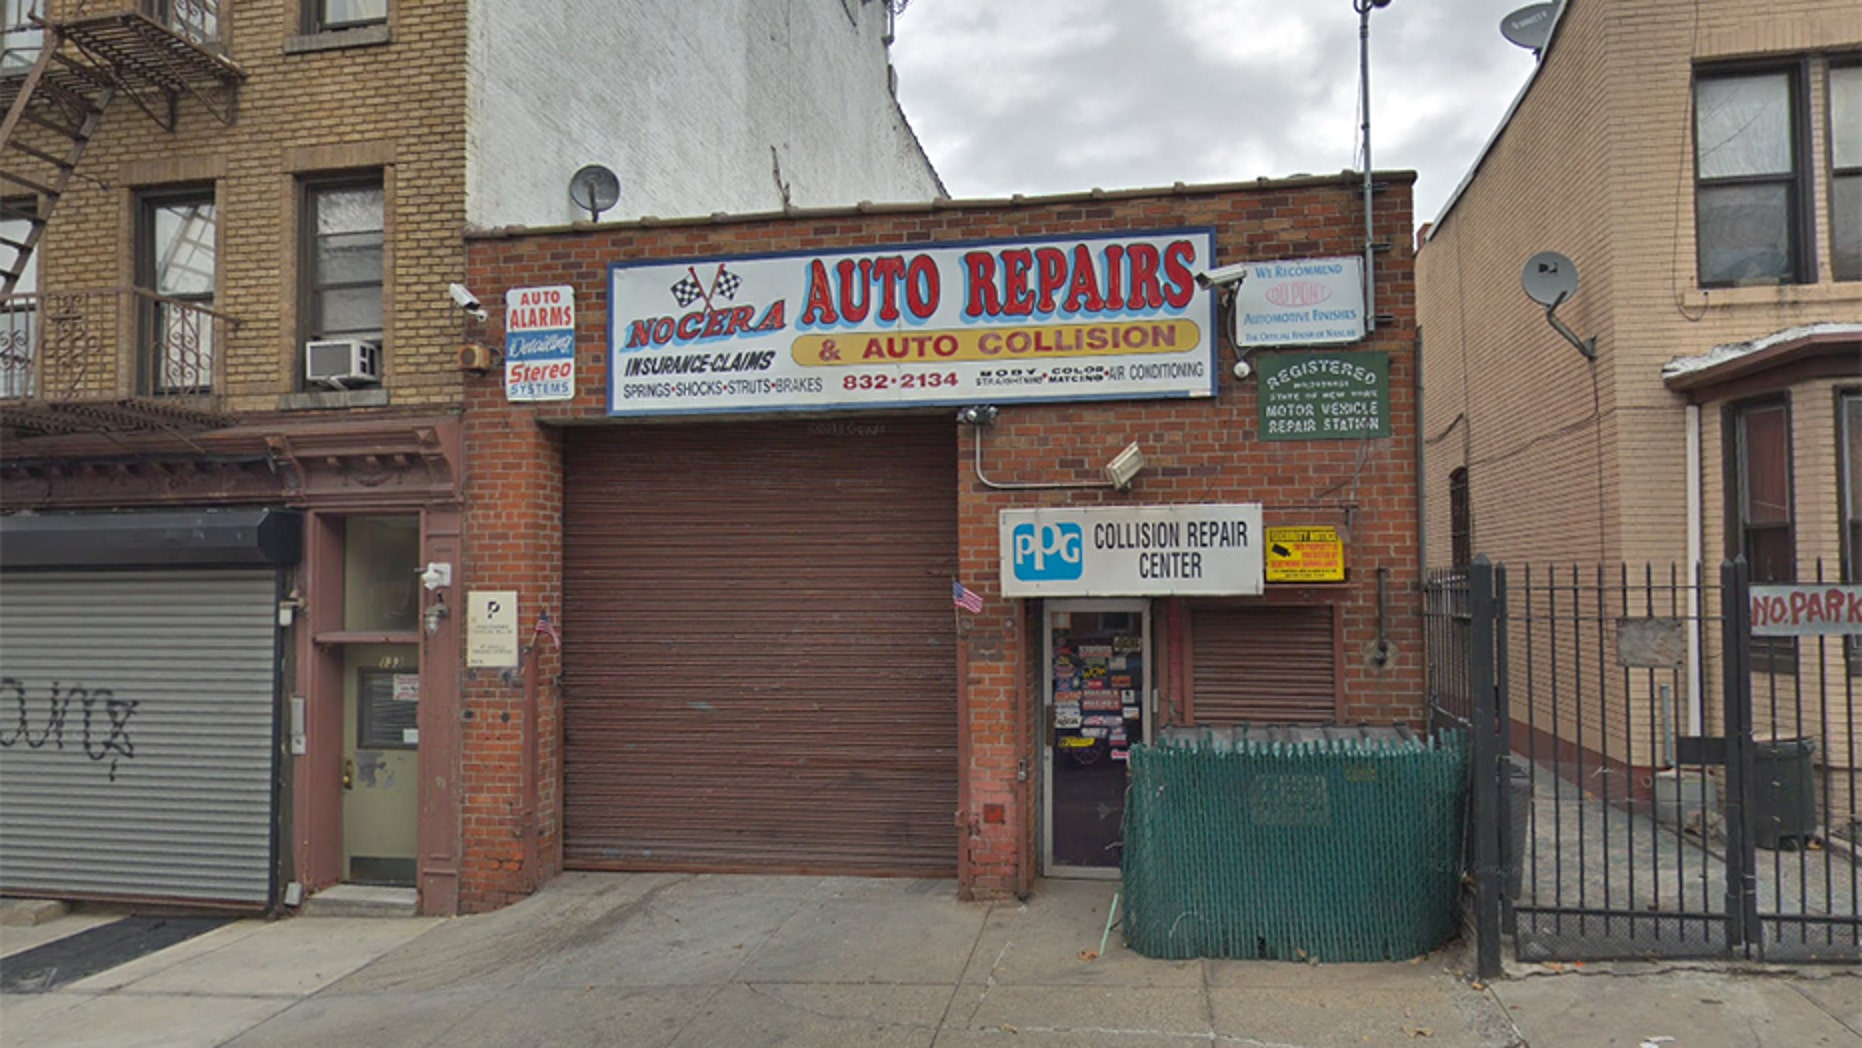 The owner of Nocera Auto Repairs in New York City said UPS offered to compensate him for two packages that were left in a dumpster by a delivery driver.